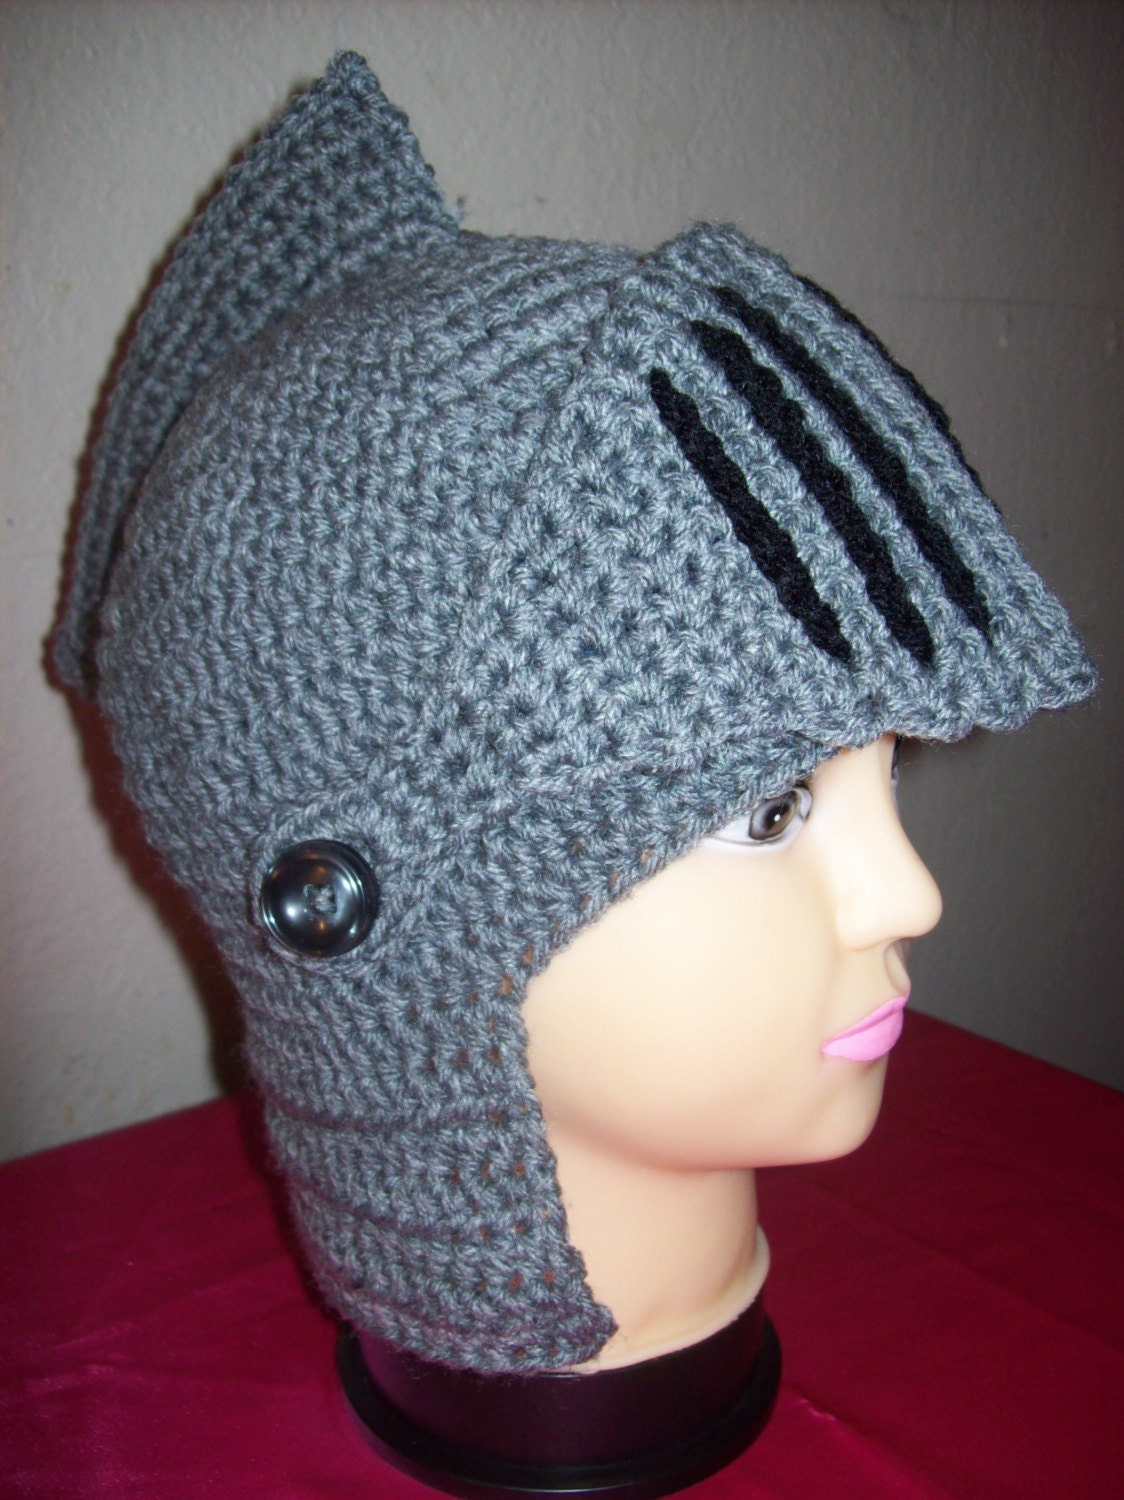 Free Crochet Pattern For Helmet Hat : Crochet Knights Helmet Hat. by robabella on Etsy